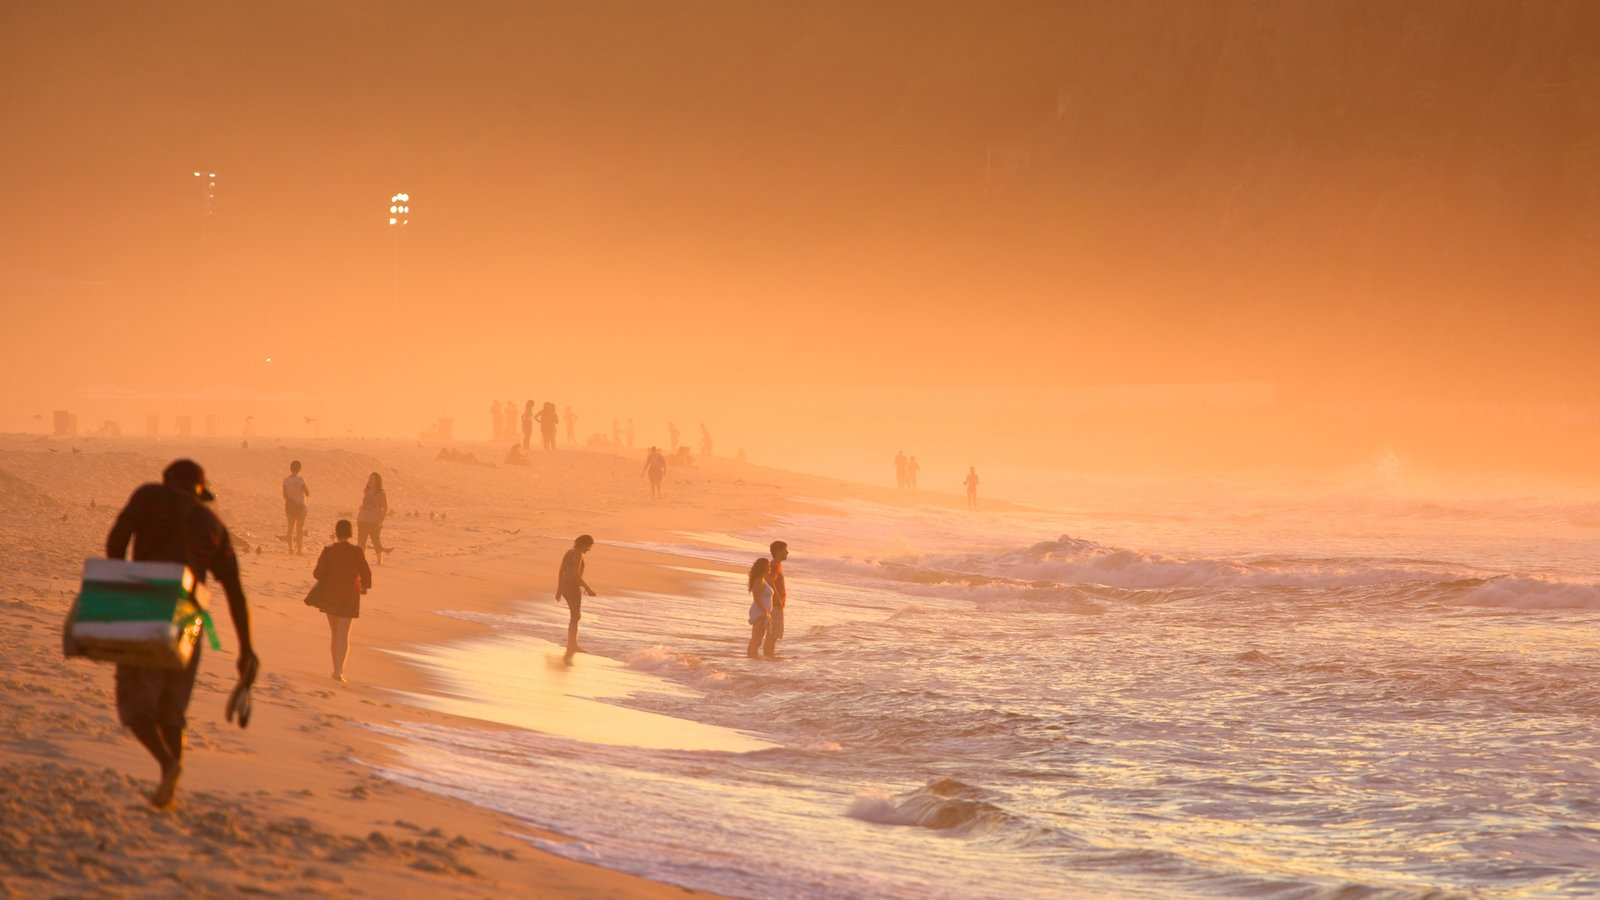 Copacabana Beach showing a sunset, mist or fog and a beach